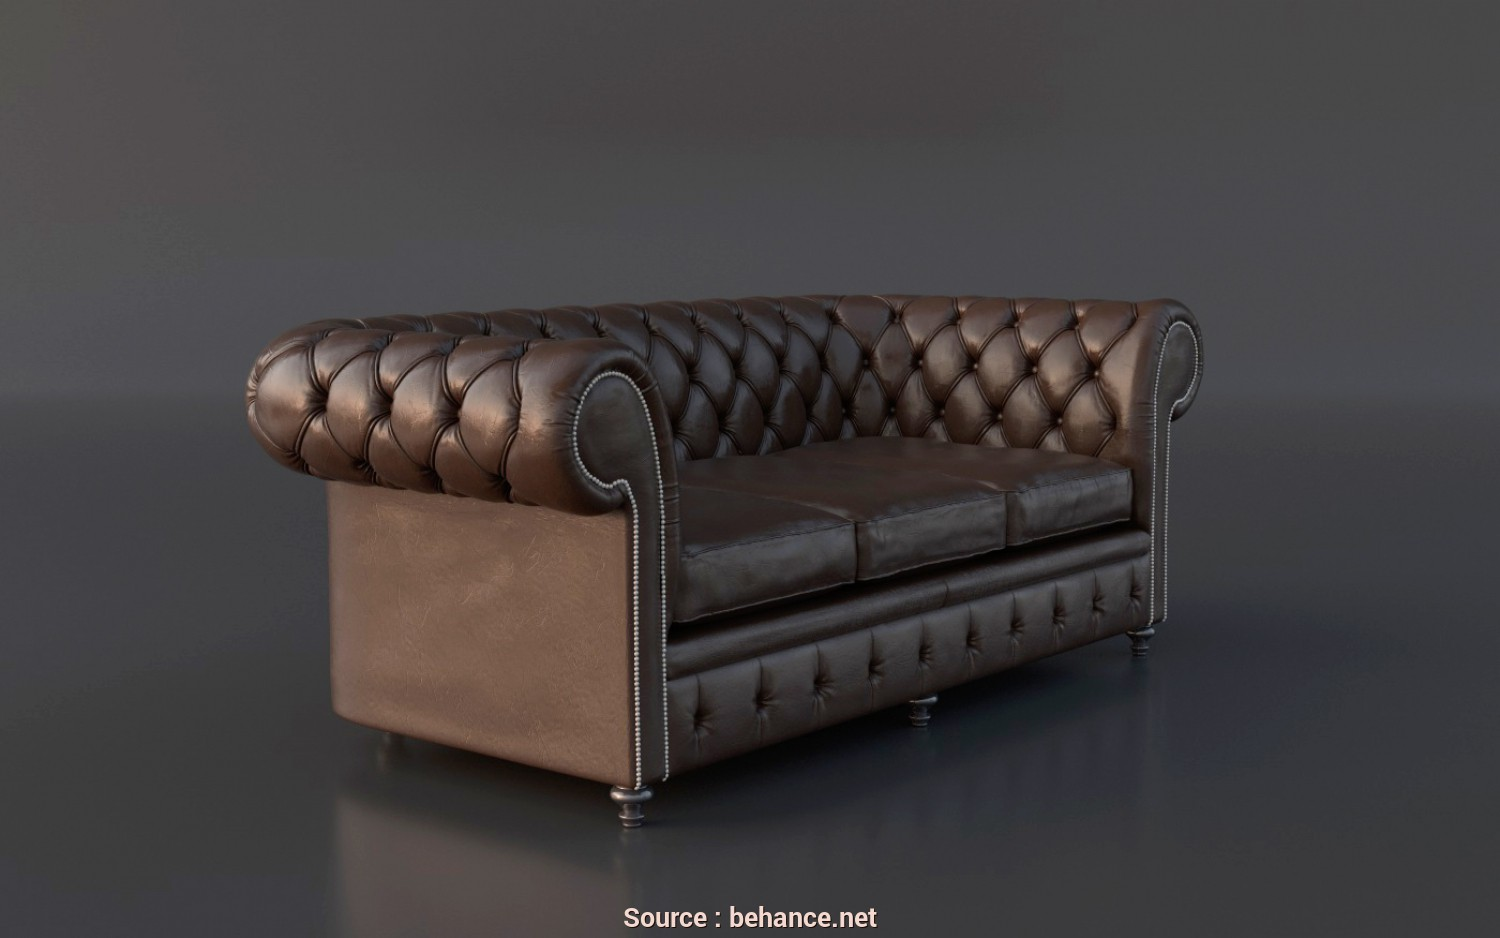 Divano Chesterfield 3D, Bella FREE Chesterfield Couch 3D Model On Behance